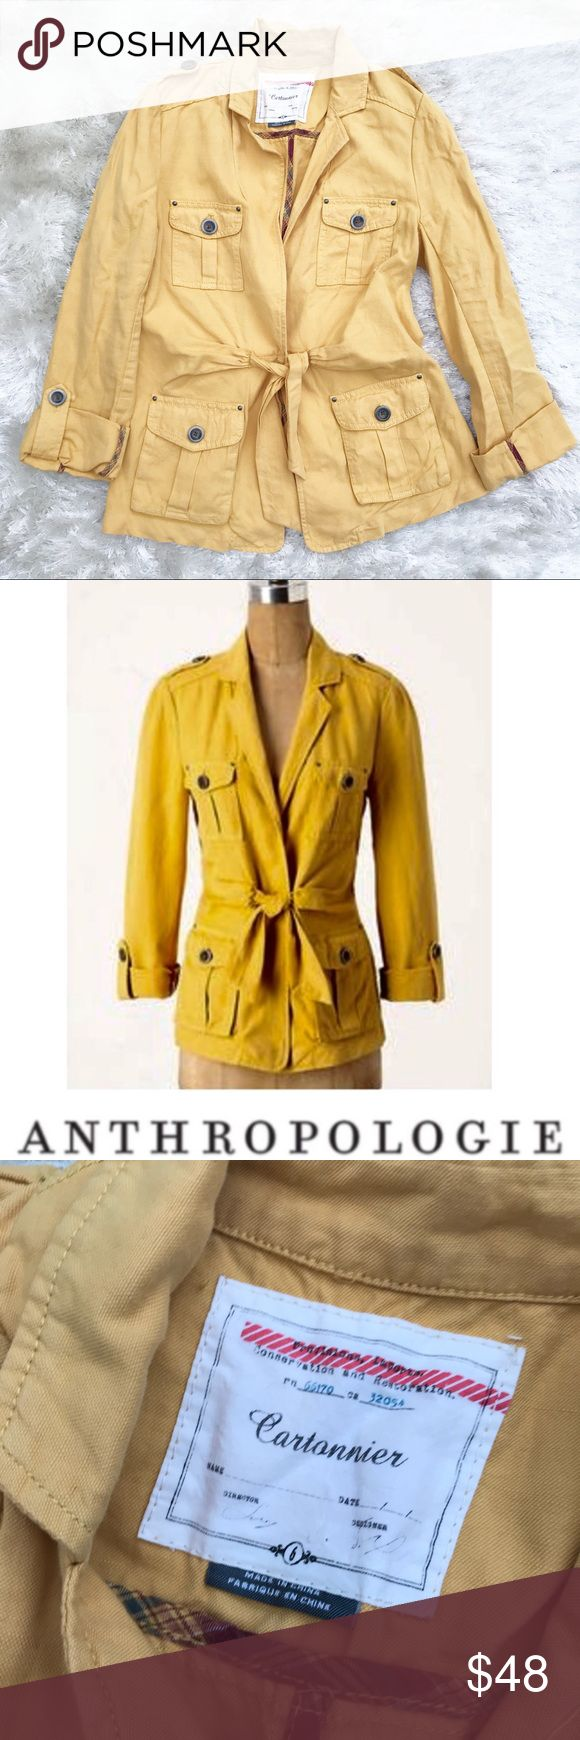 ANTHROPOLOGIE Cartonnier Mustard Utility Jacket Anthropologie Cartonnier Yellow Utility Jacket. Mustard colored. Quad-pockets on front panels. Adjustable length sleeves. Synced back panel for better waist definition. Excellent condition! 🧥 Anthropologie Jackets & Coats Utility Jackets